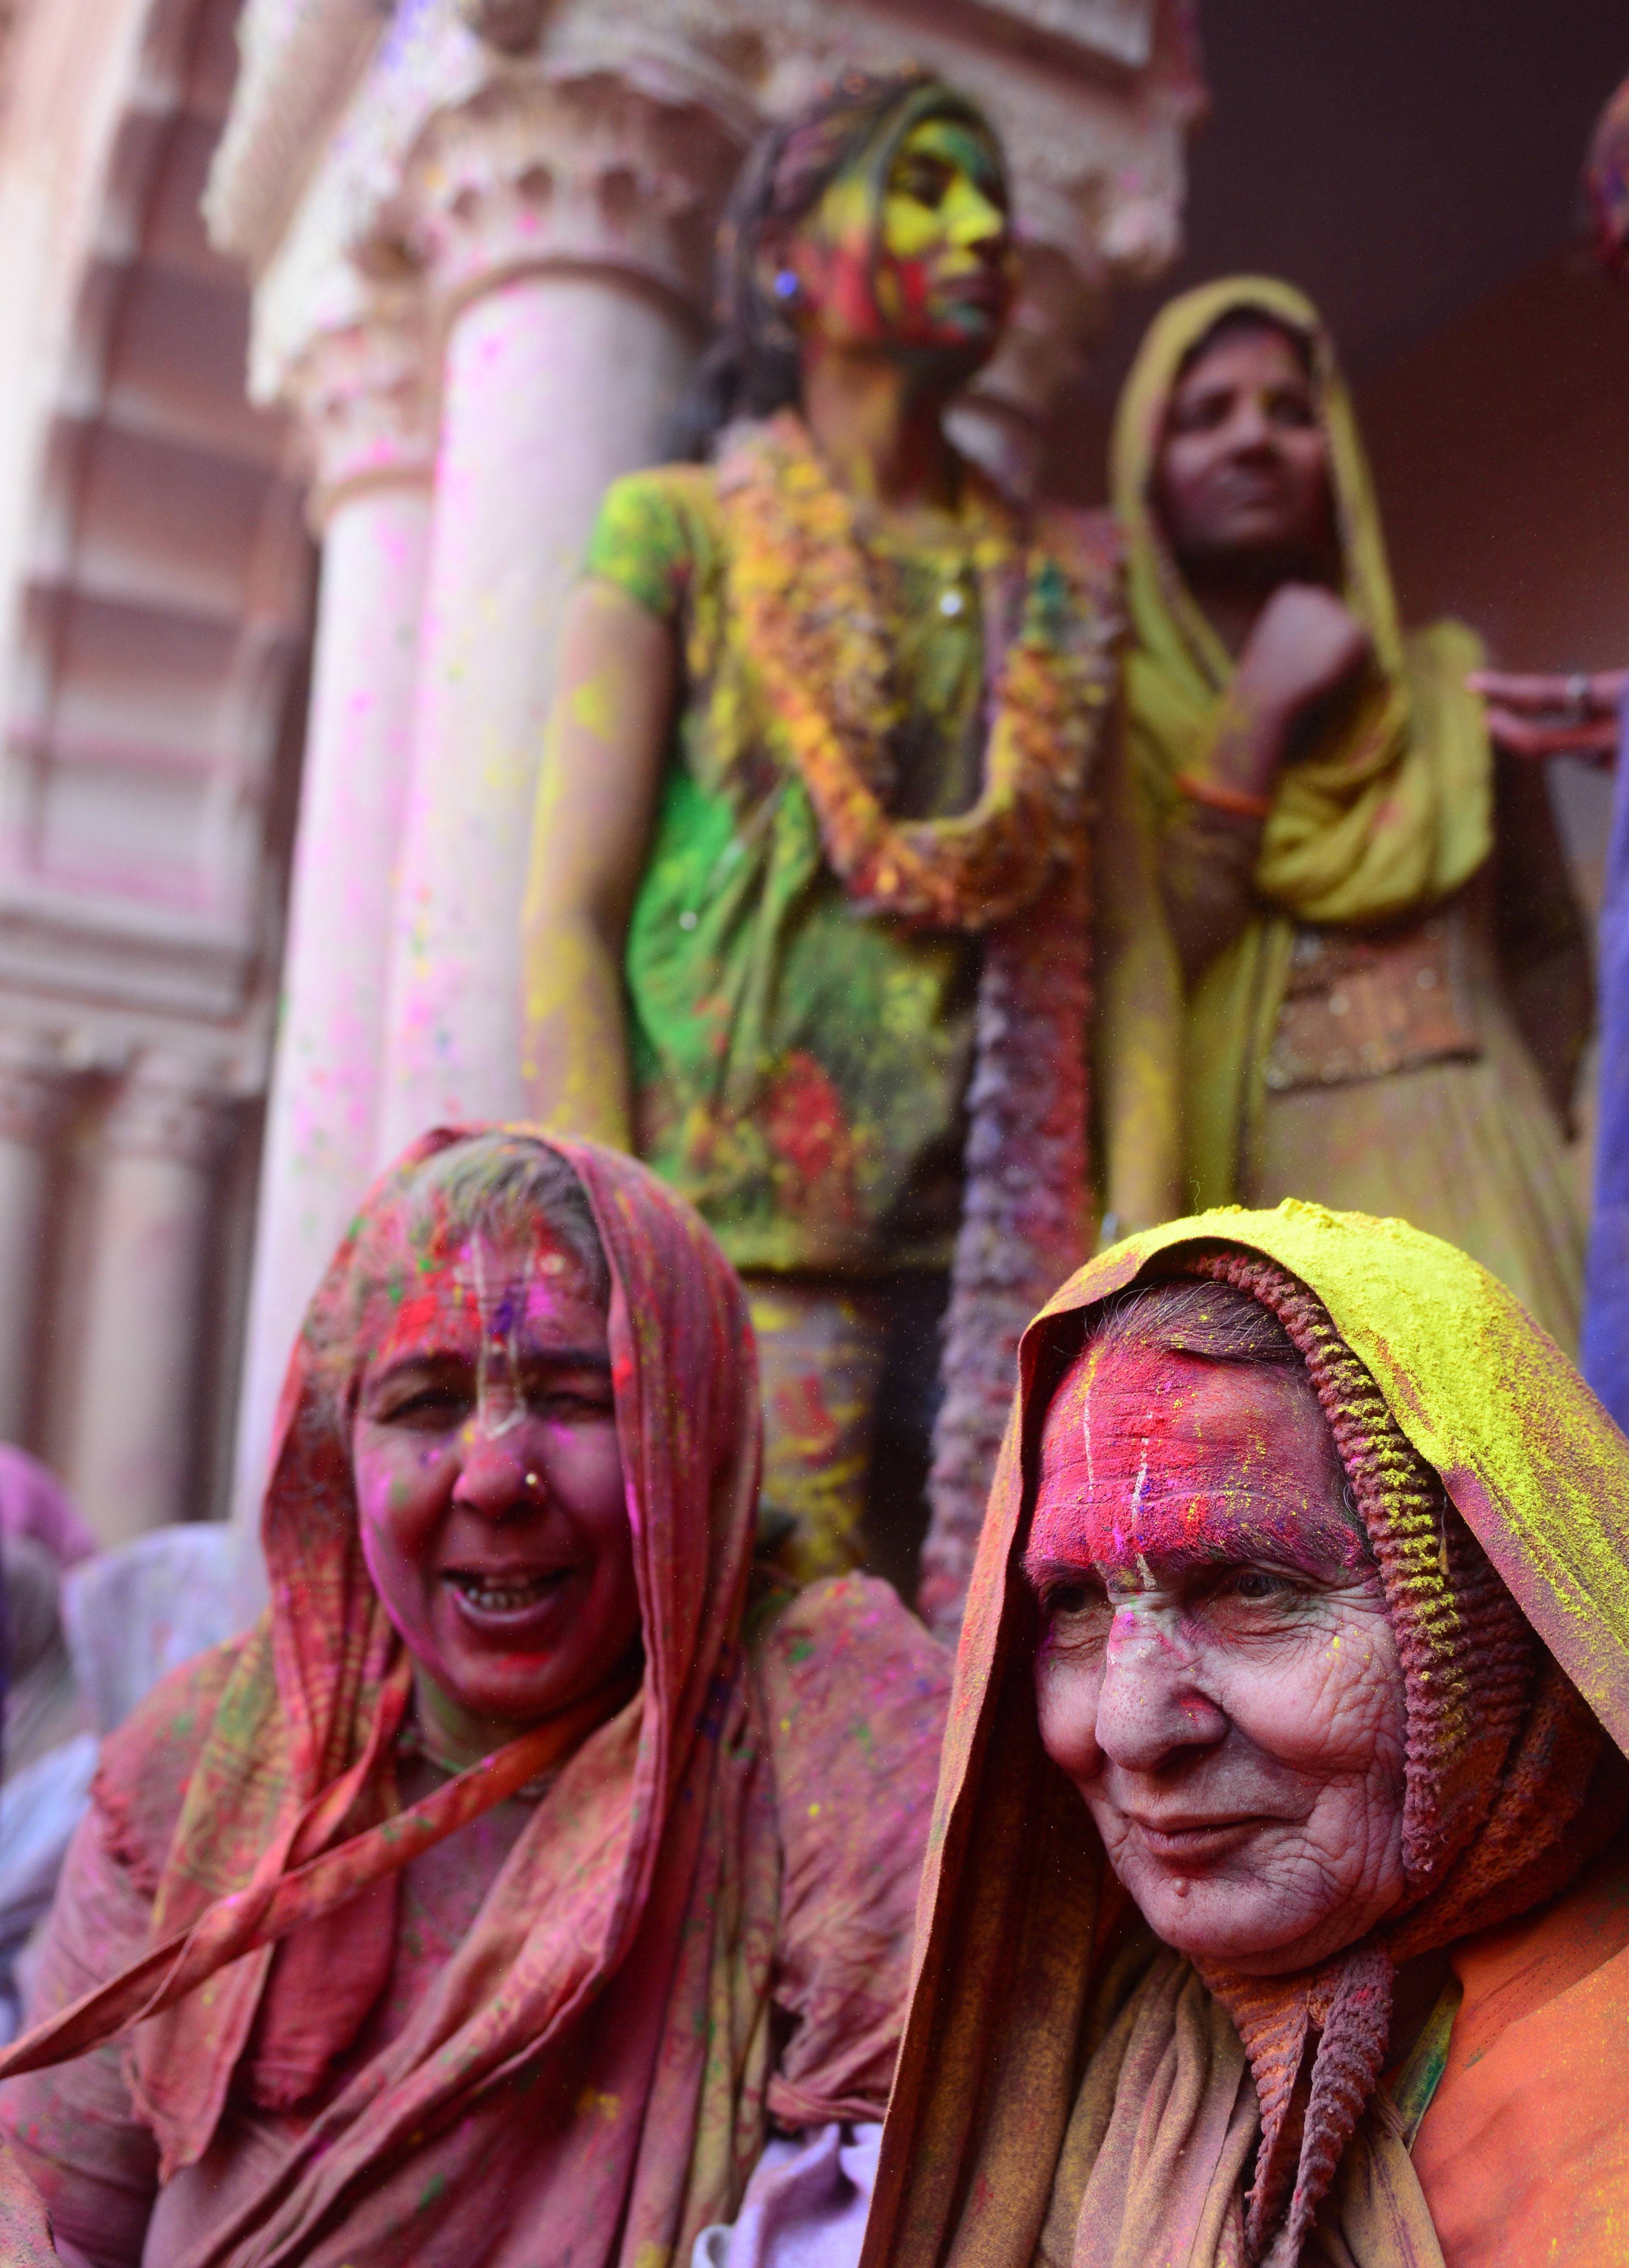 A number of widows travel from nearby districts as well to be part of Holi celebrations.